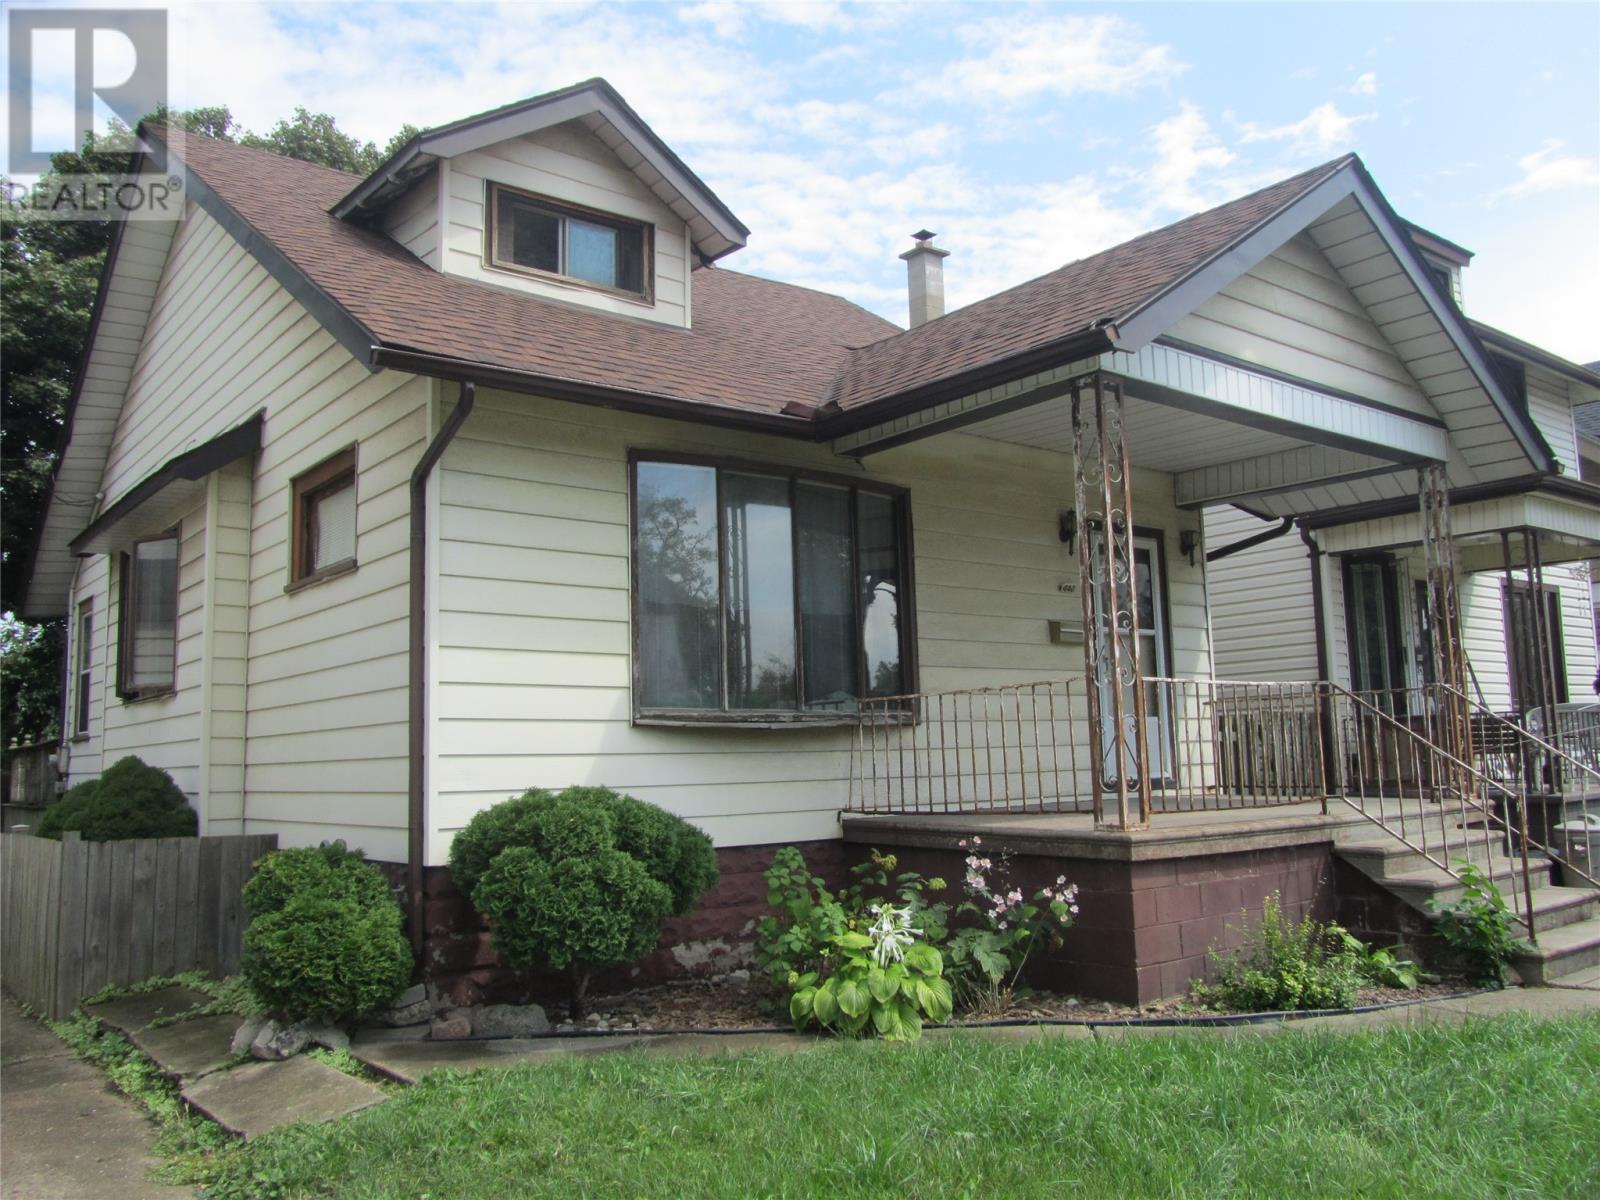 Removed: 440 Campbell Avenue, Windsor, ON - Removed on 2019-09-12 06:00:13